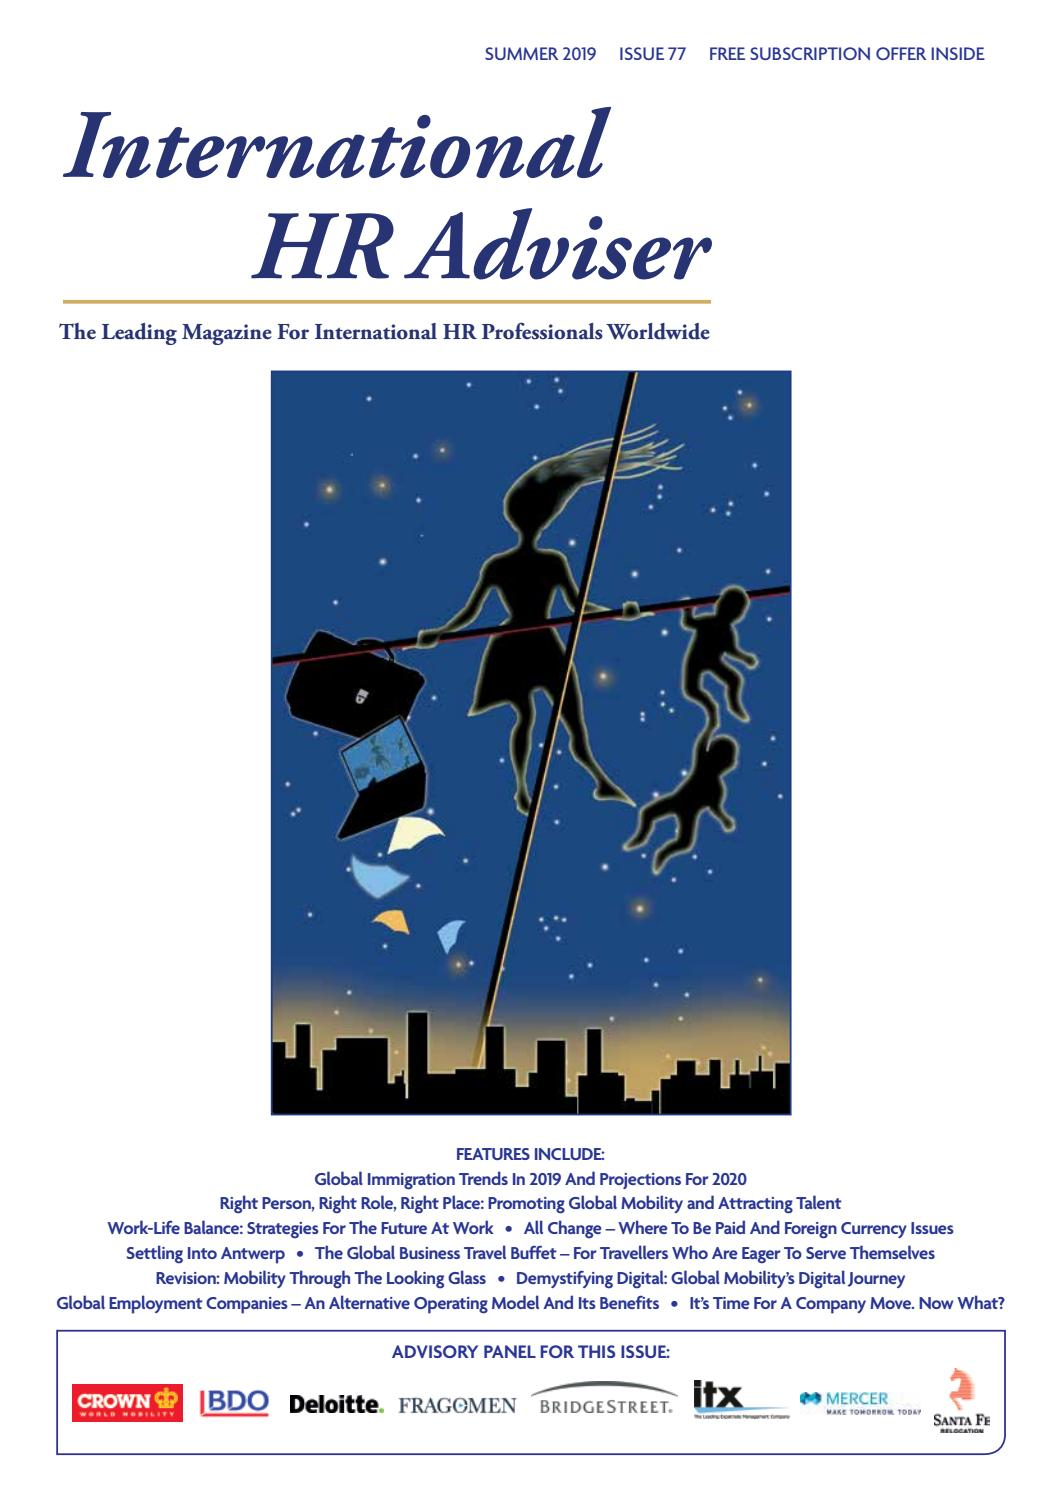 International HR Adviser Summer 2019 by International HR